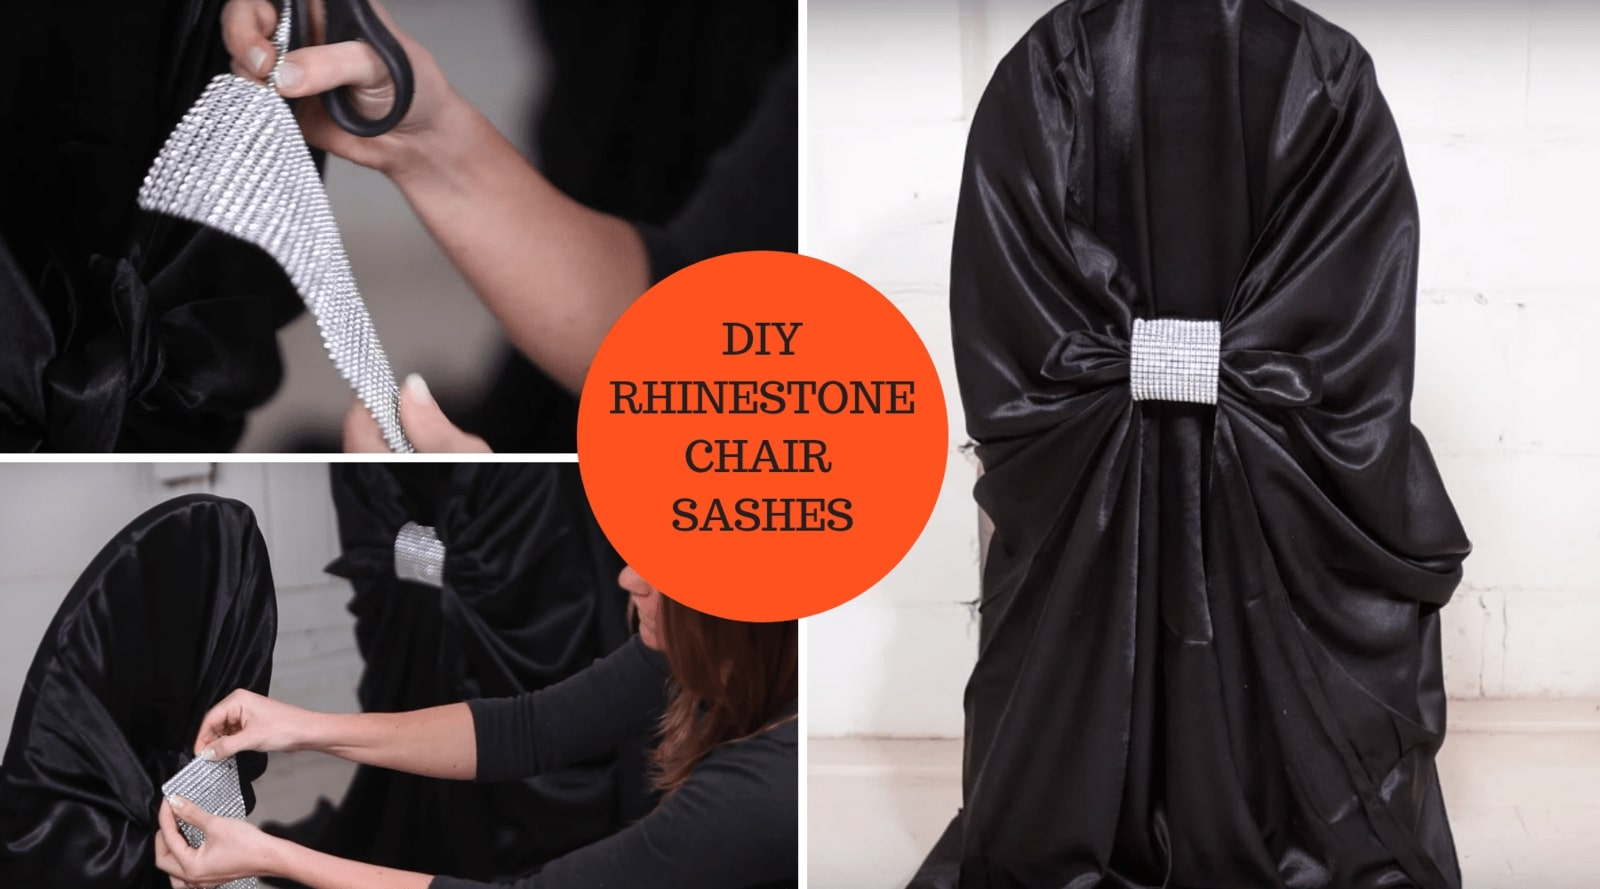 DIY RHINESTONE CHAIR EMBELLISHMENT TUTORIAL